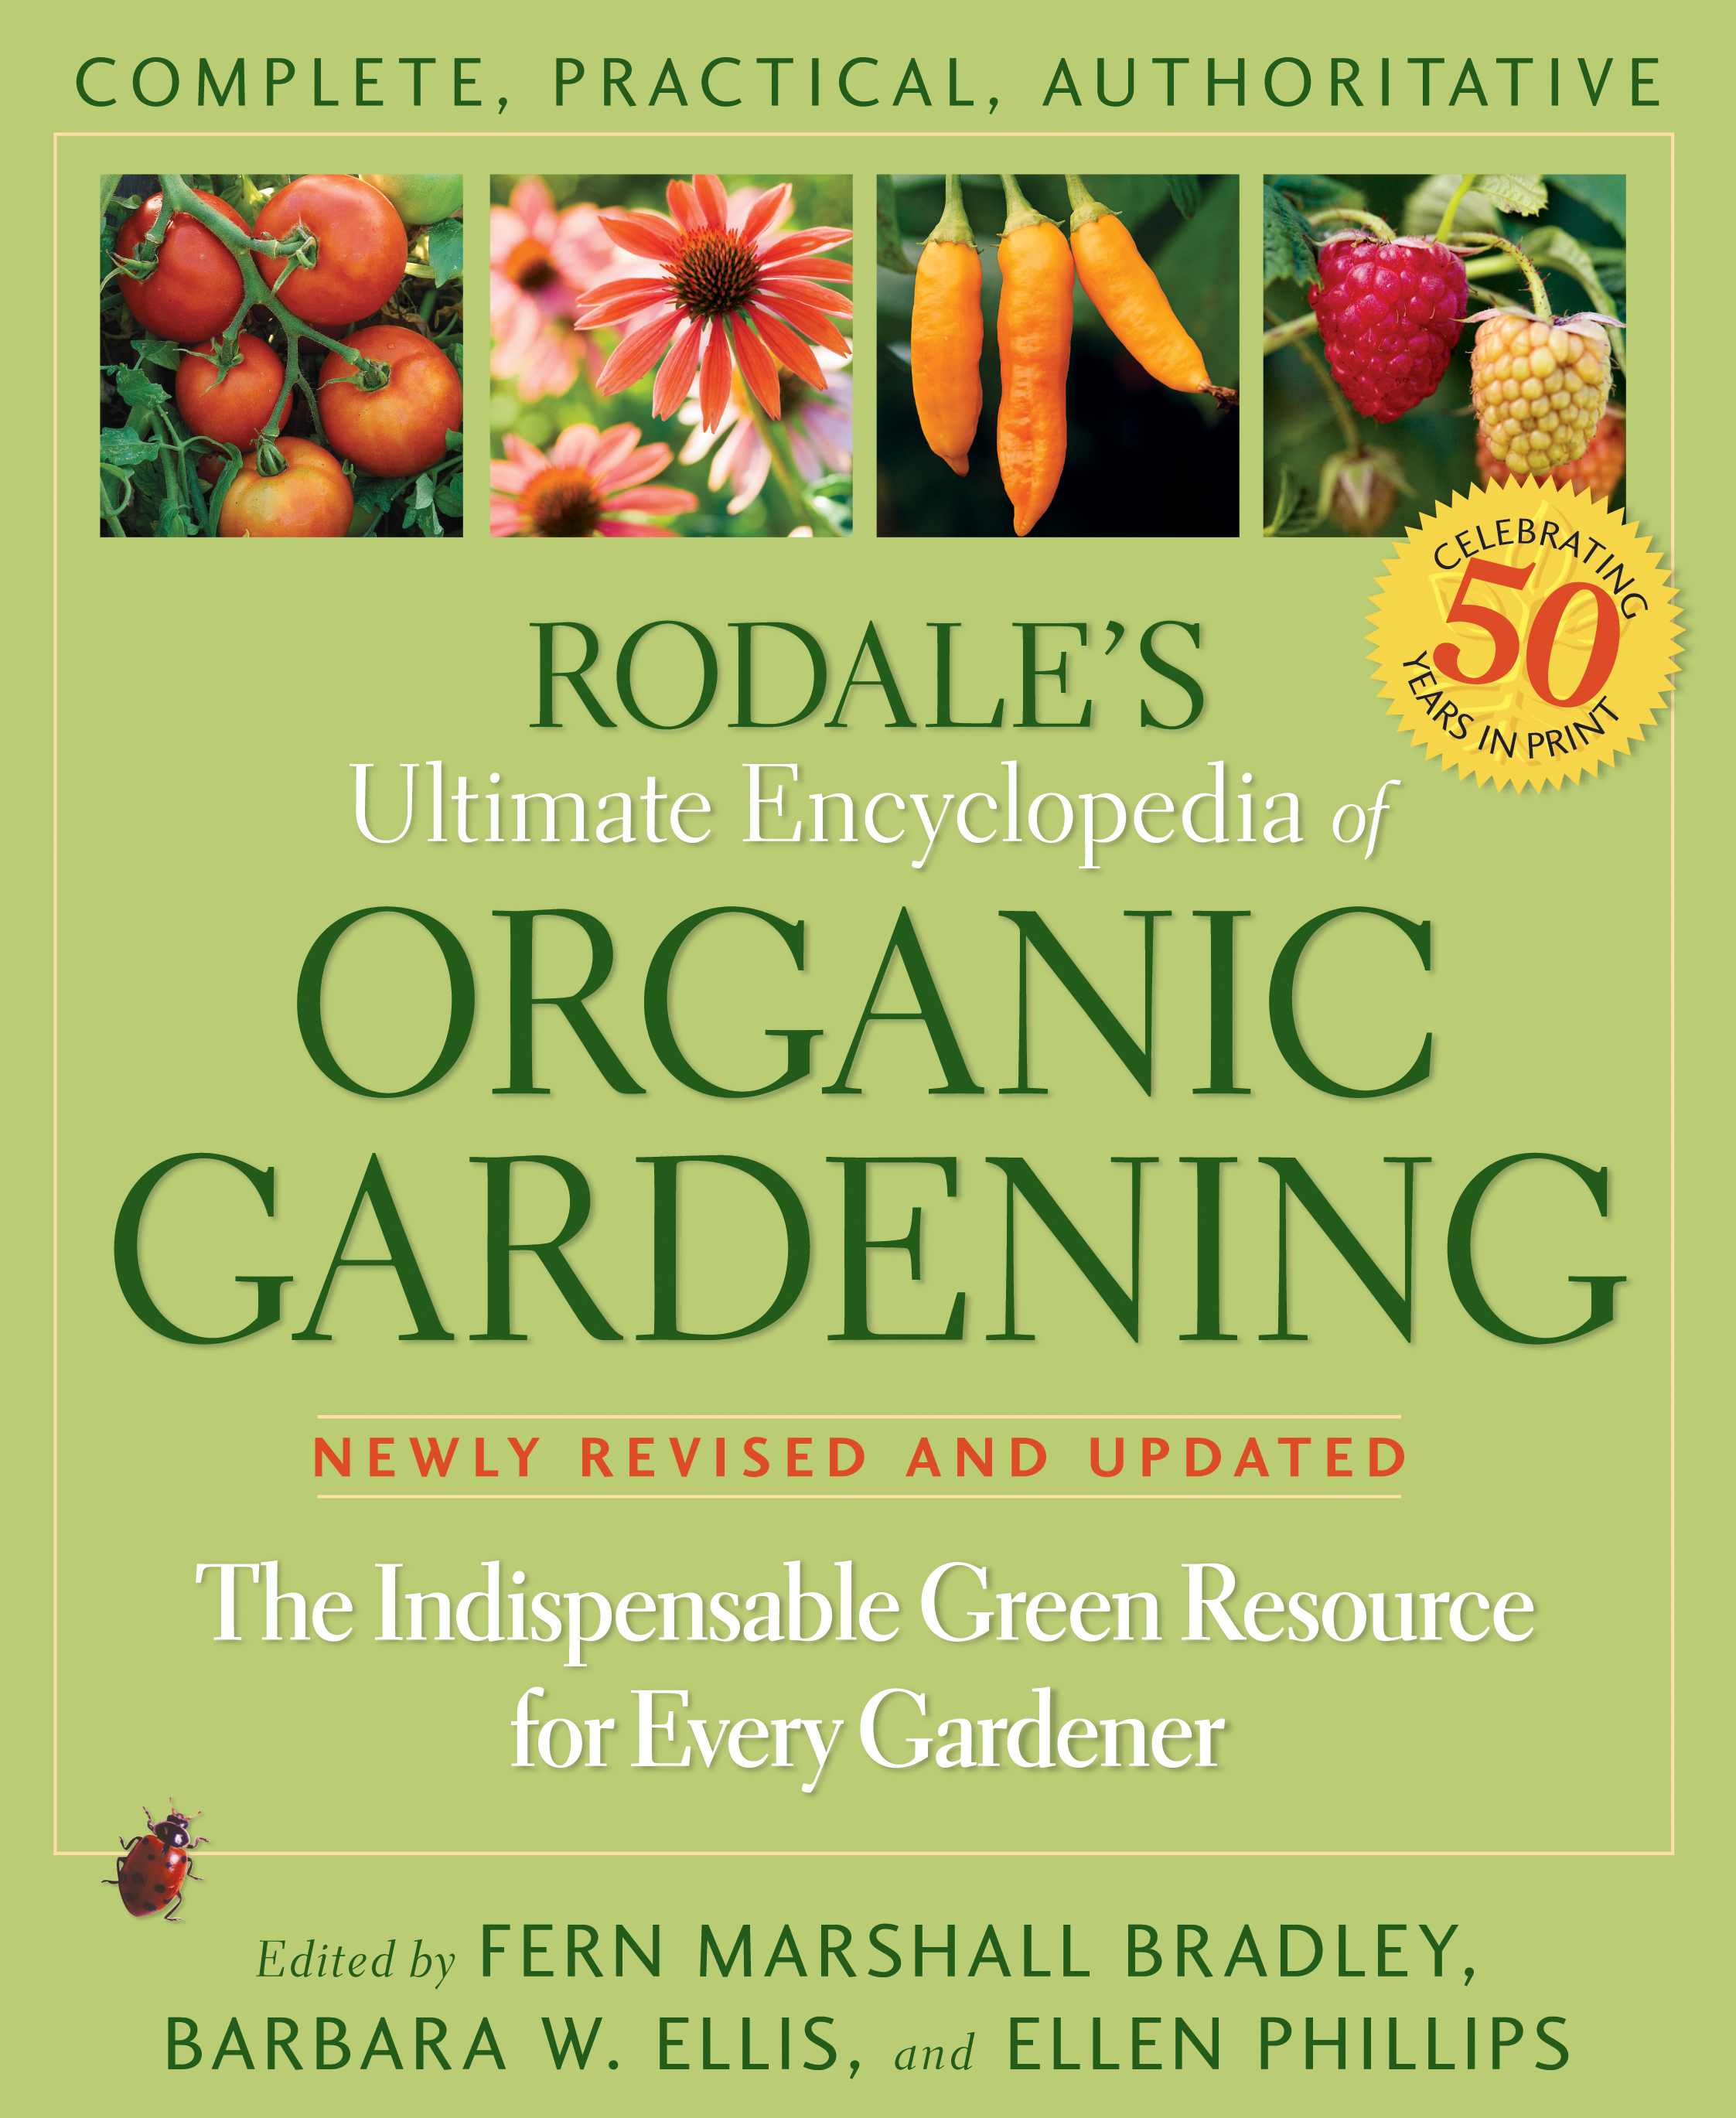 Rodale's Ultimate Encyclopiedia of Organic Gardening